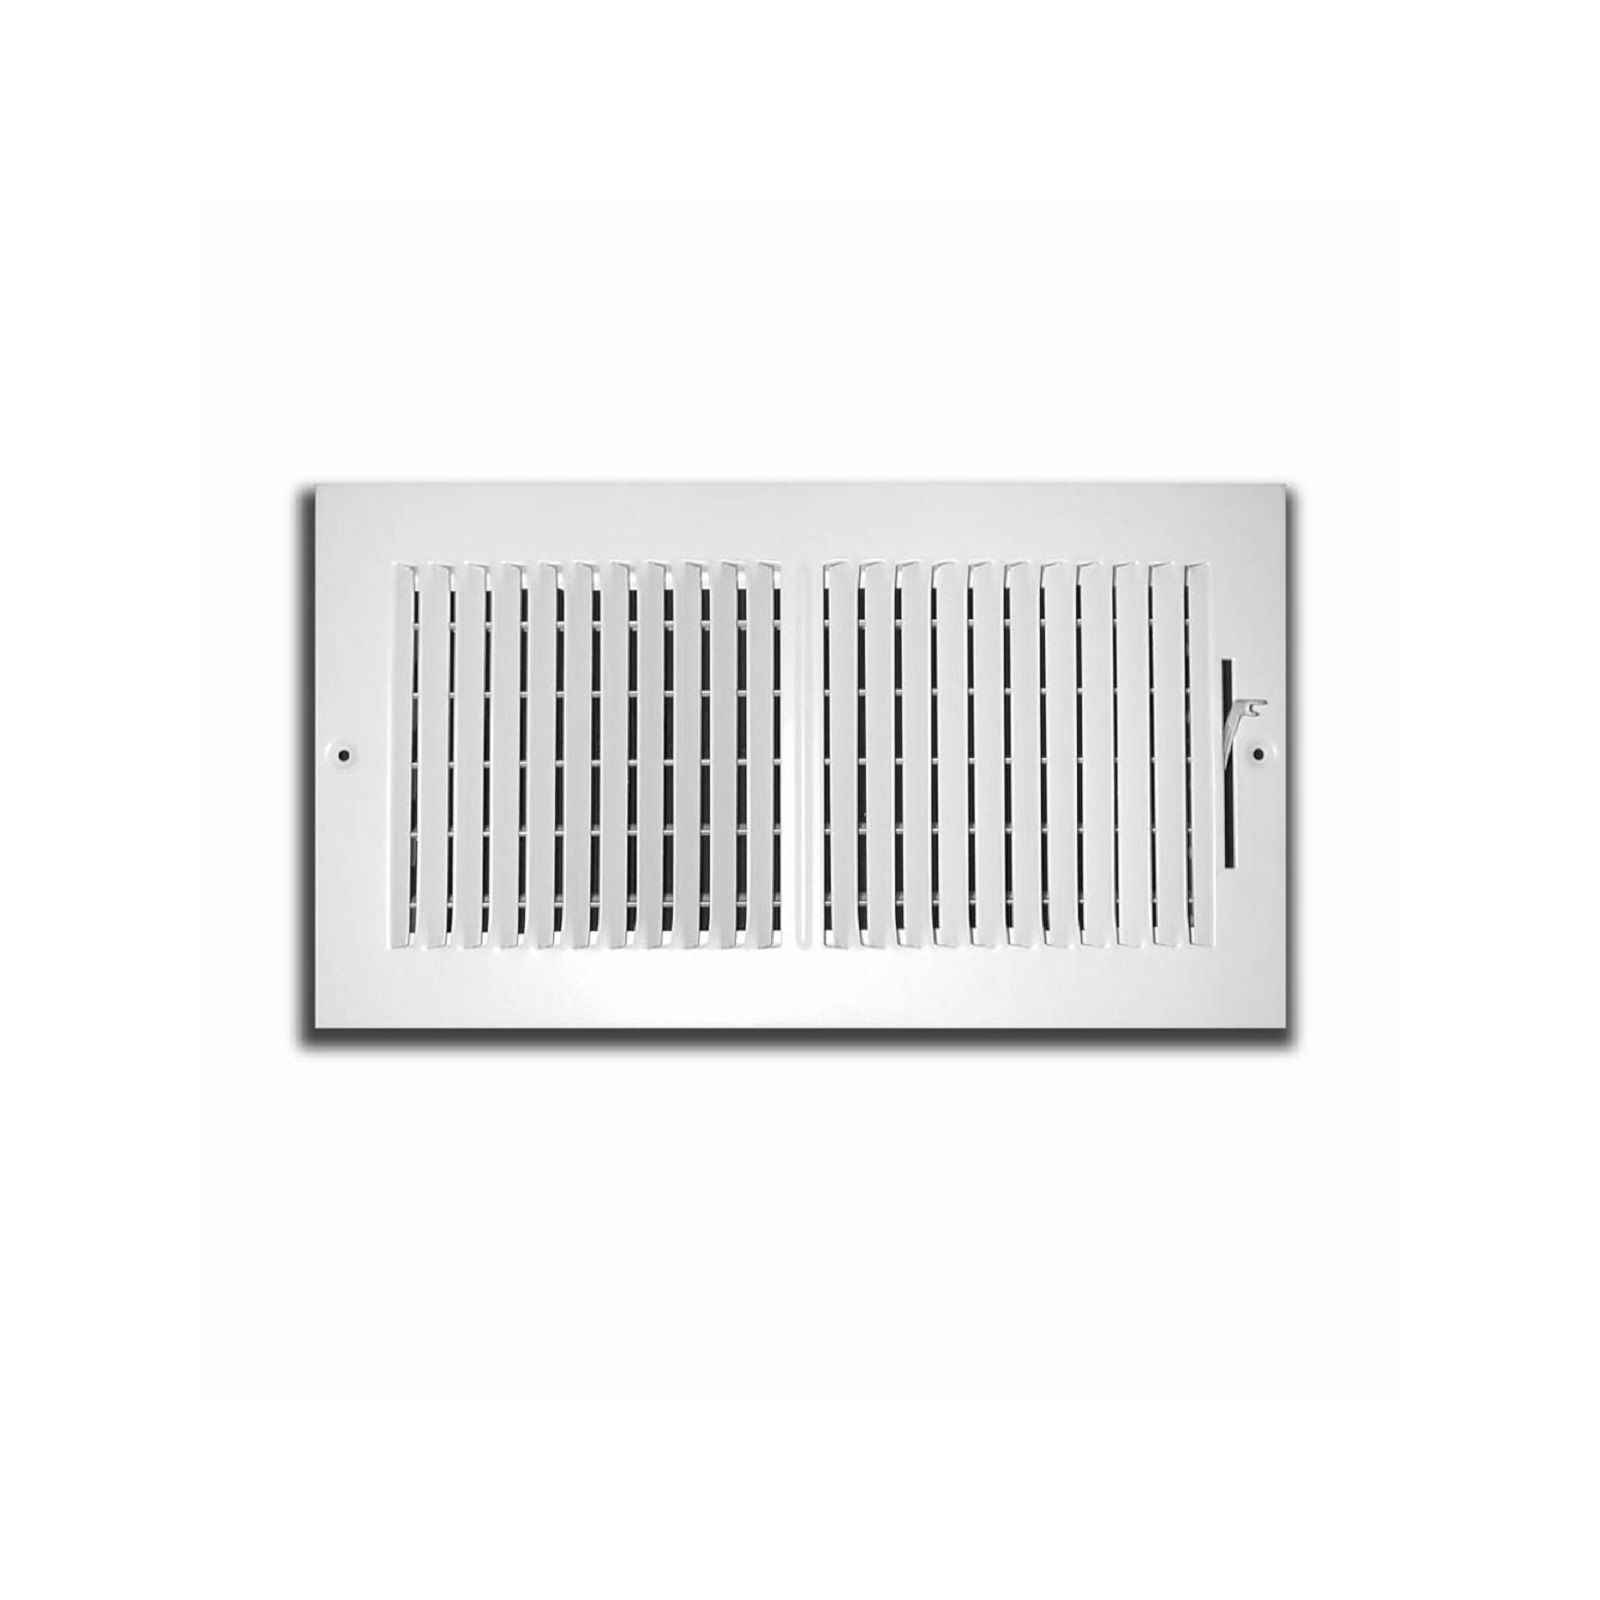 "TRUaire 102M 14X10 - Stamped Steel 2-Way Wall/Ceiling Register, 14"" X 10"""